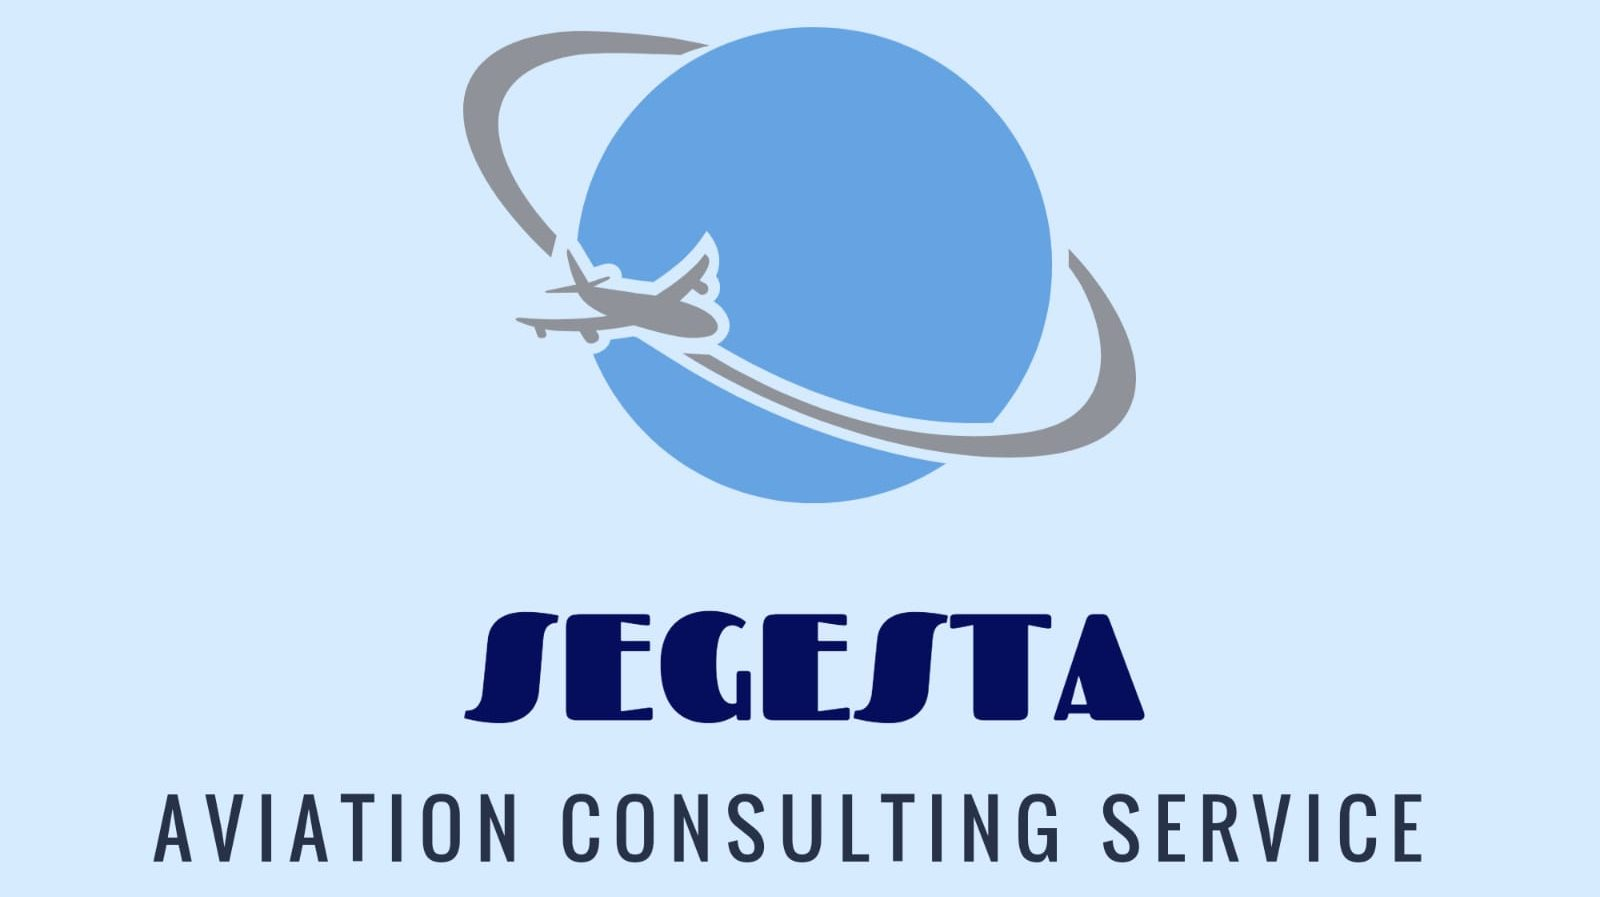 Segesta – Aviation Consulting Services E.T.S. logo